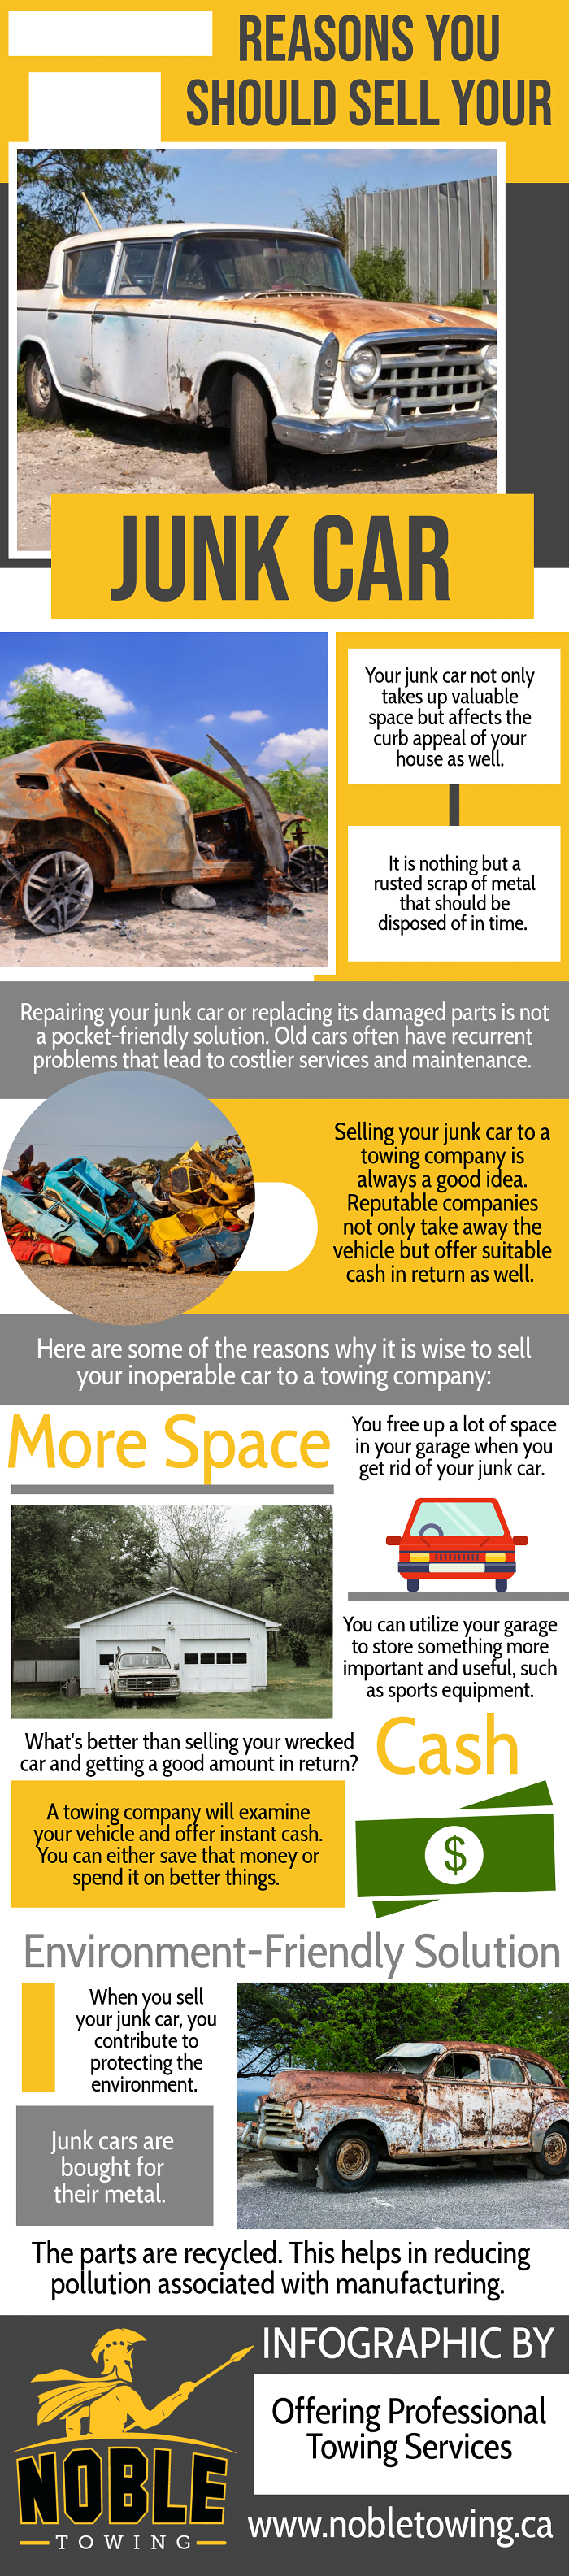 Reasons You Should Sell Your Junk Car